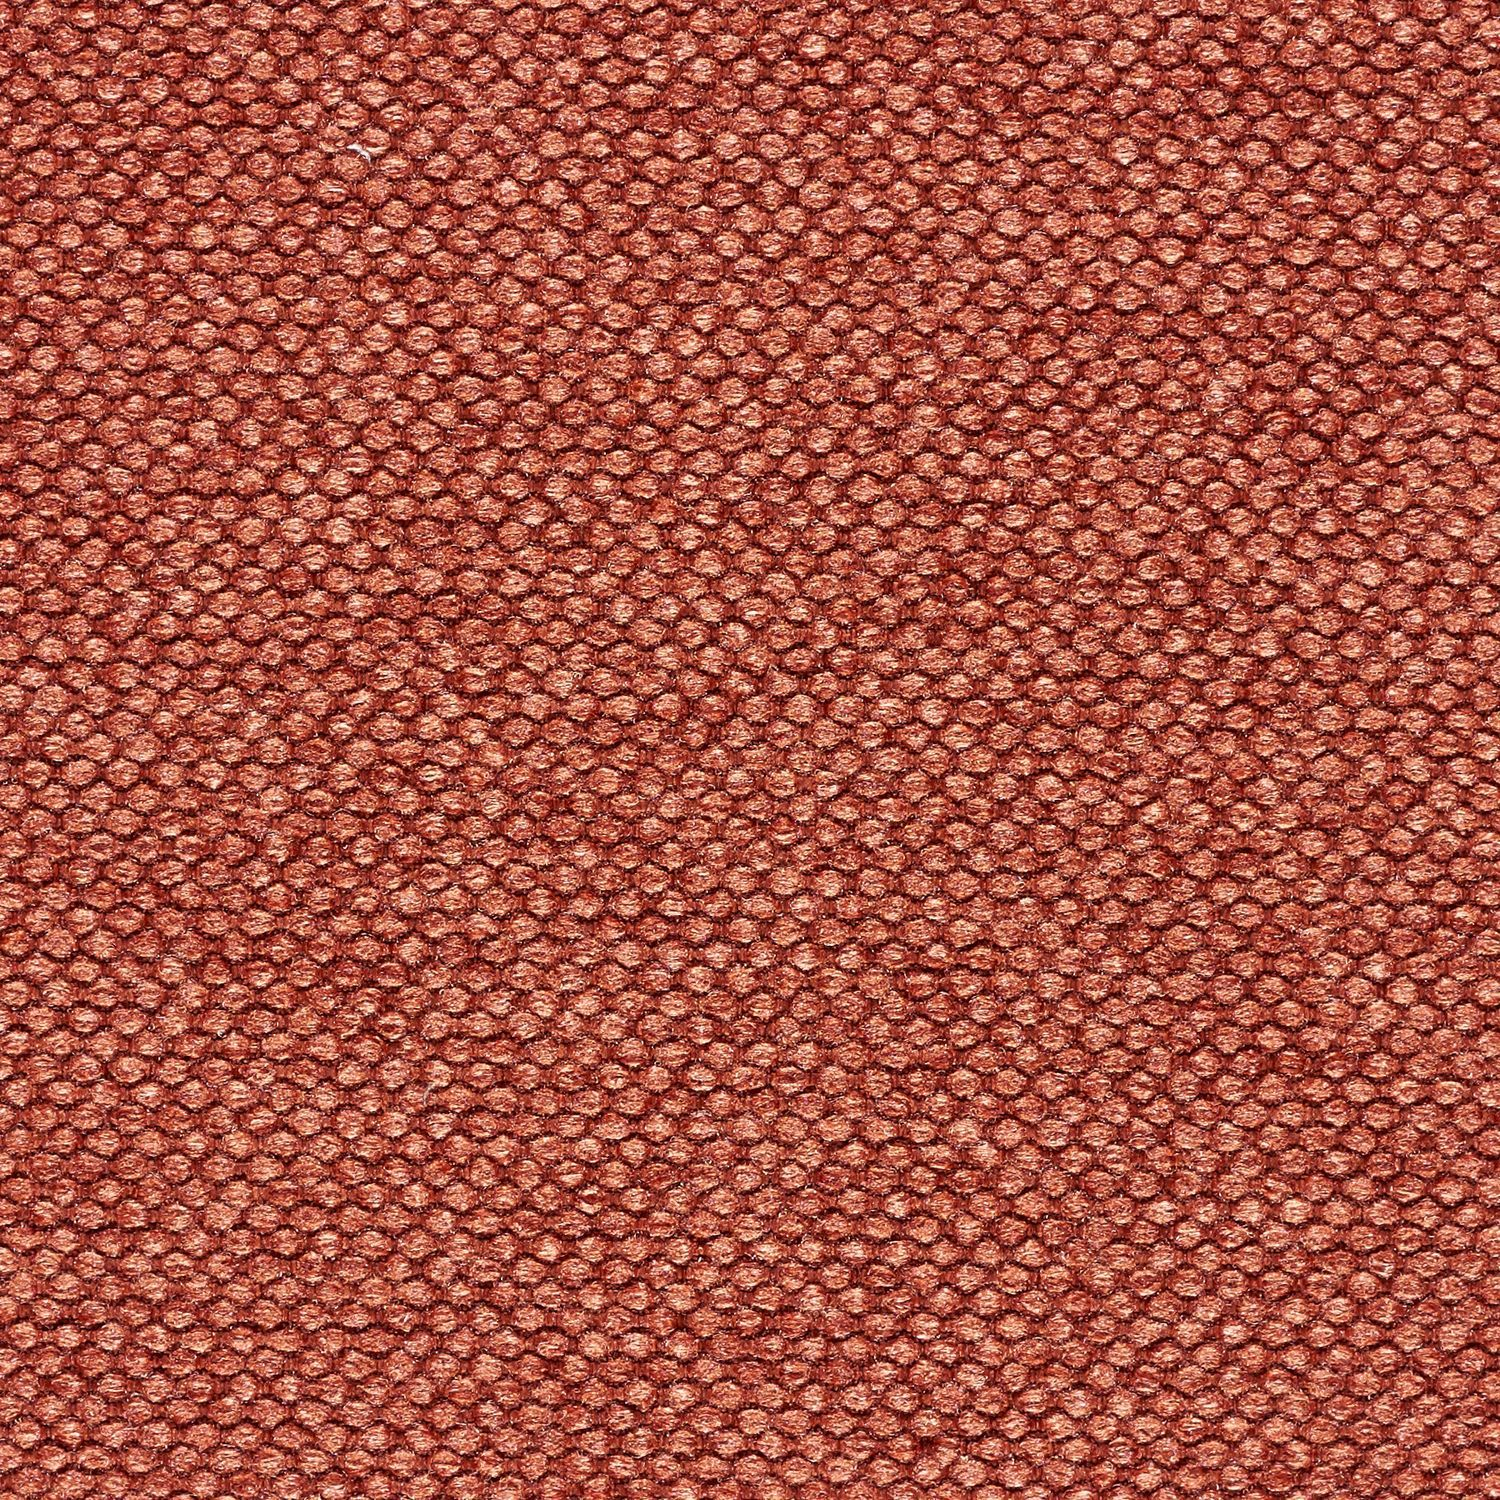 Low-D323_Raspite-Tweed